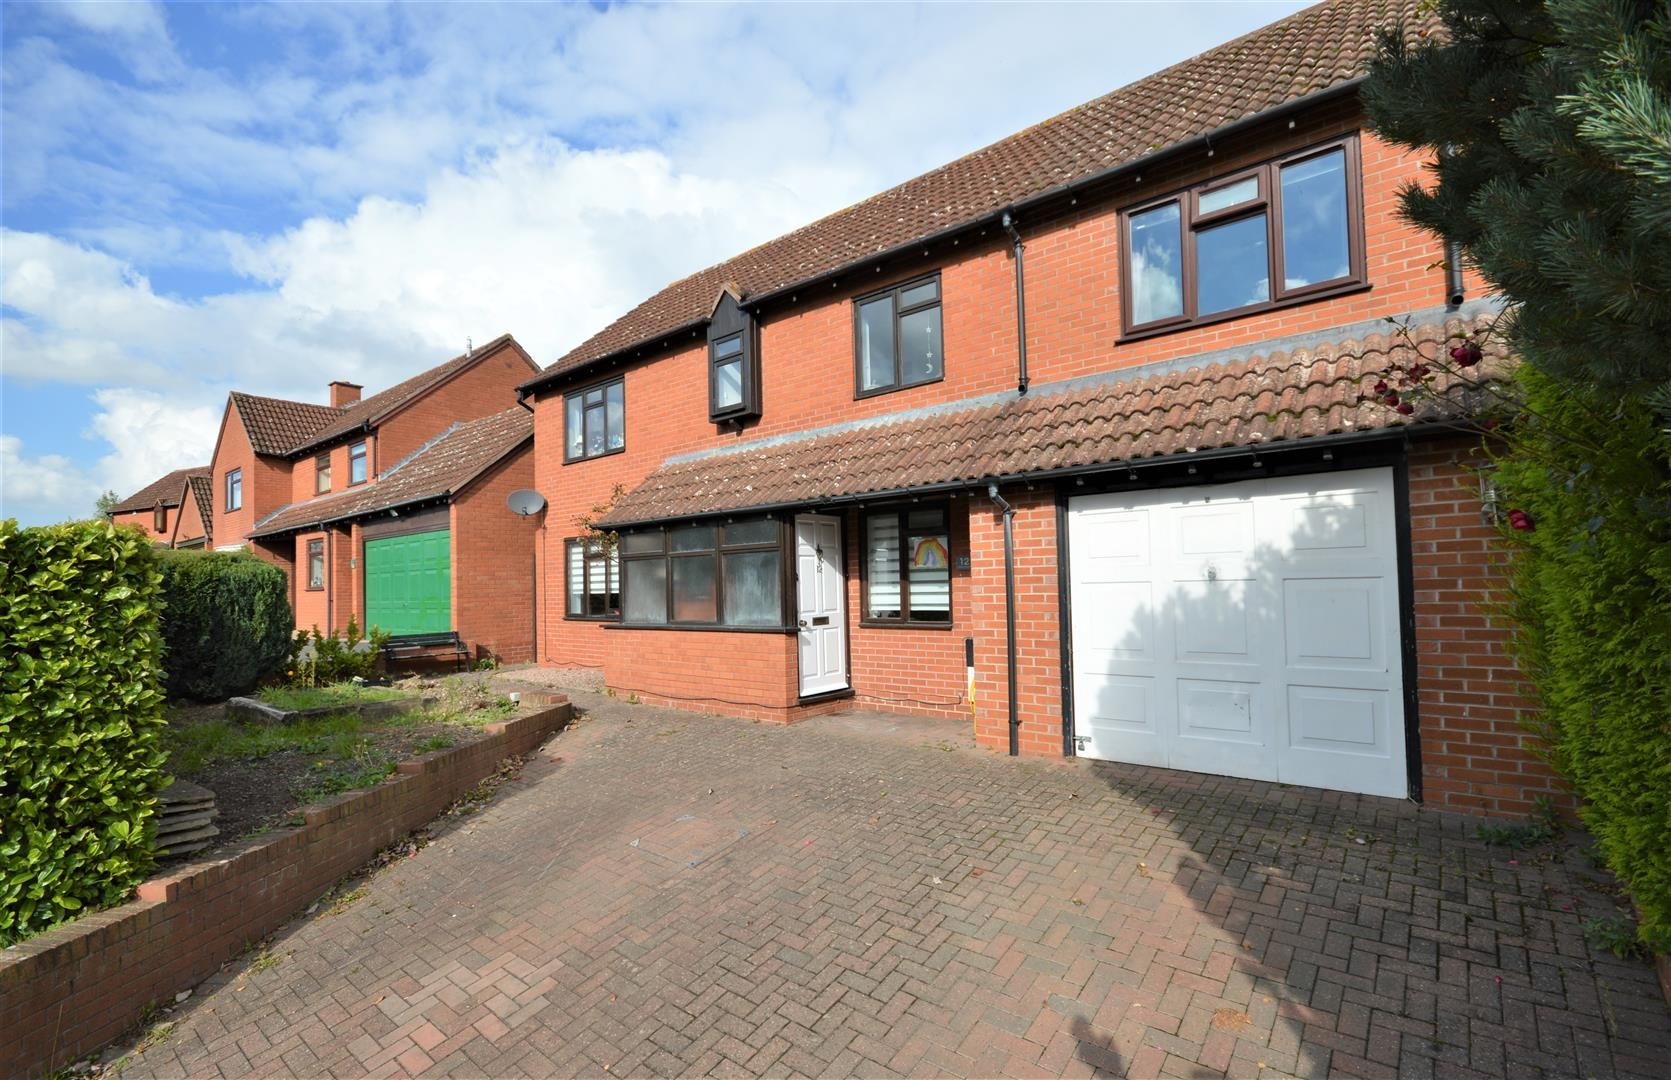 4 bed detached for sale, HR1